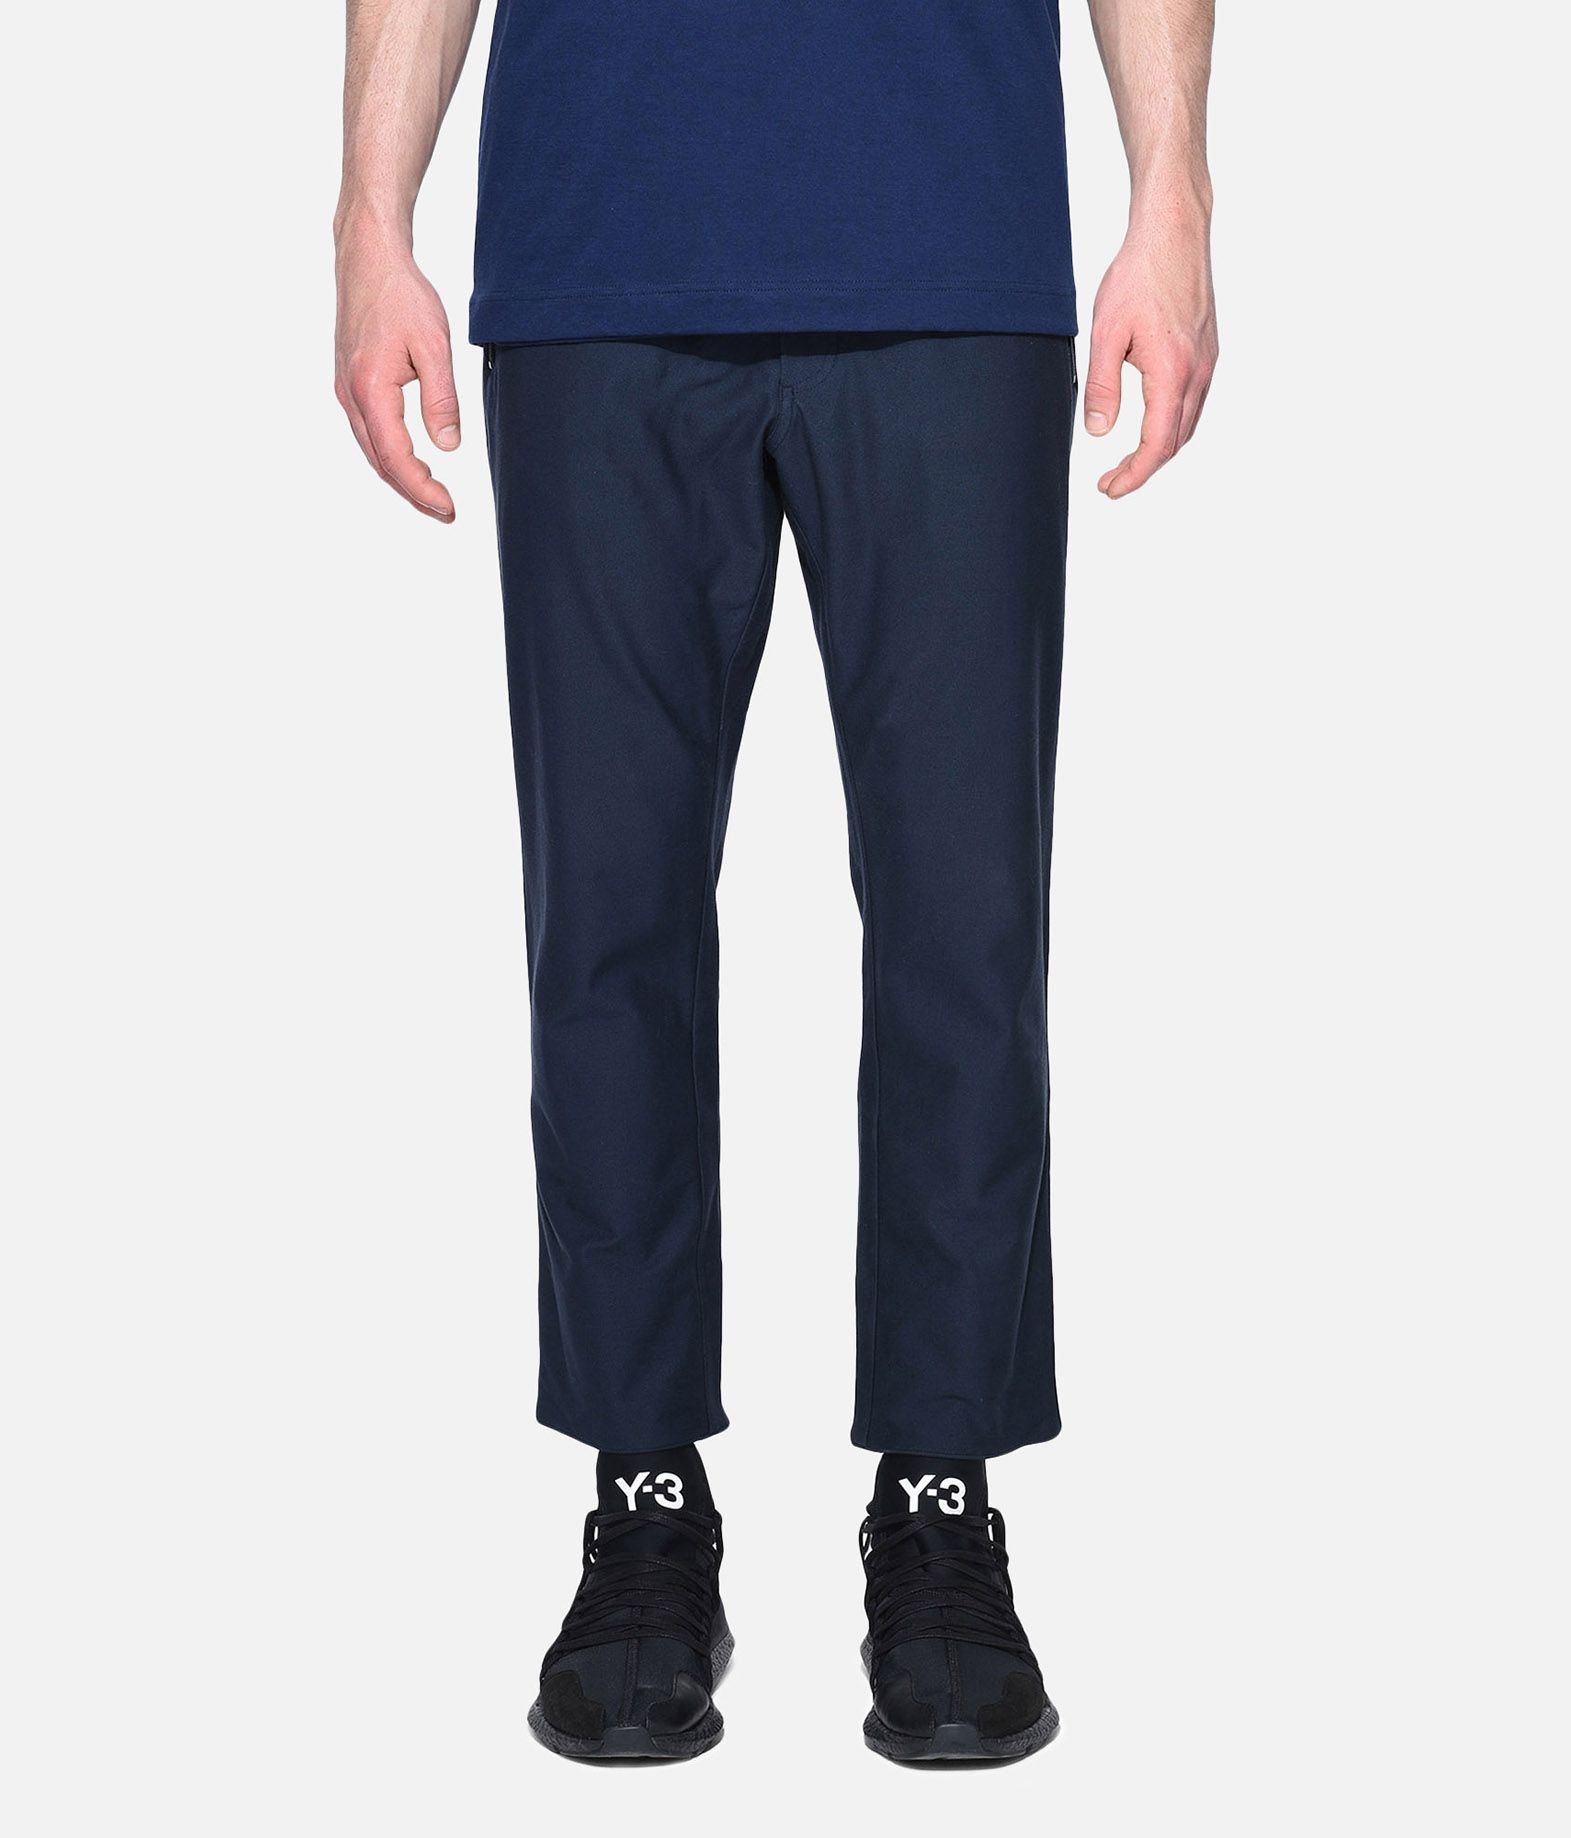 Y-3 Y-3 Twill Cropped Pants Cropped pant Man r